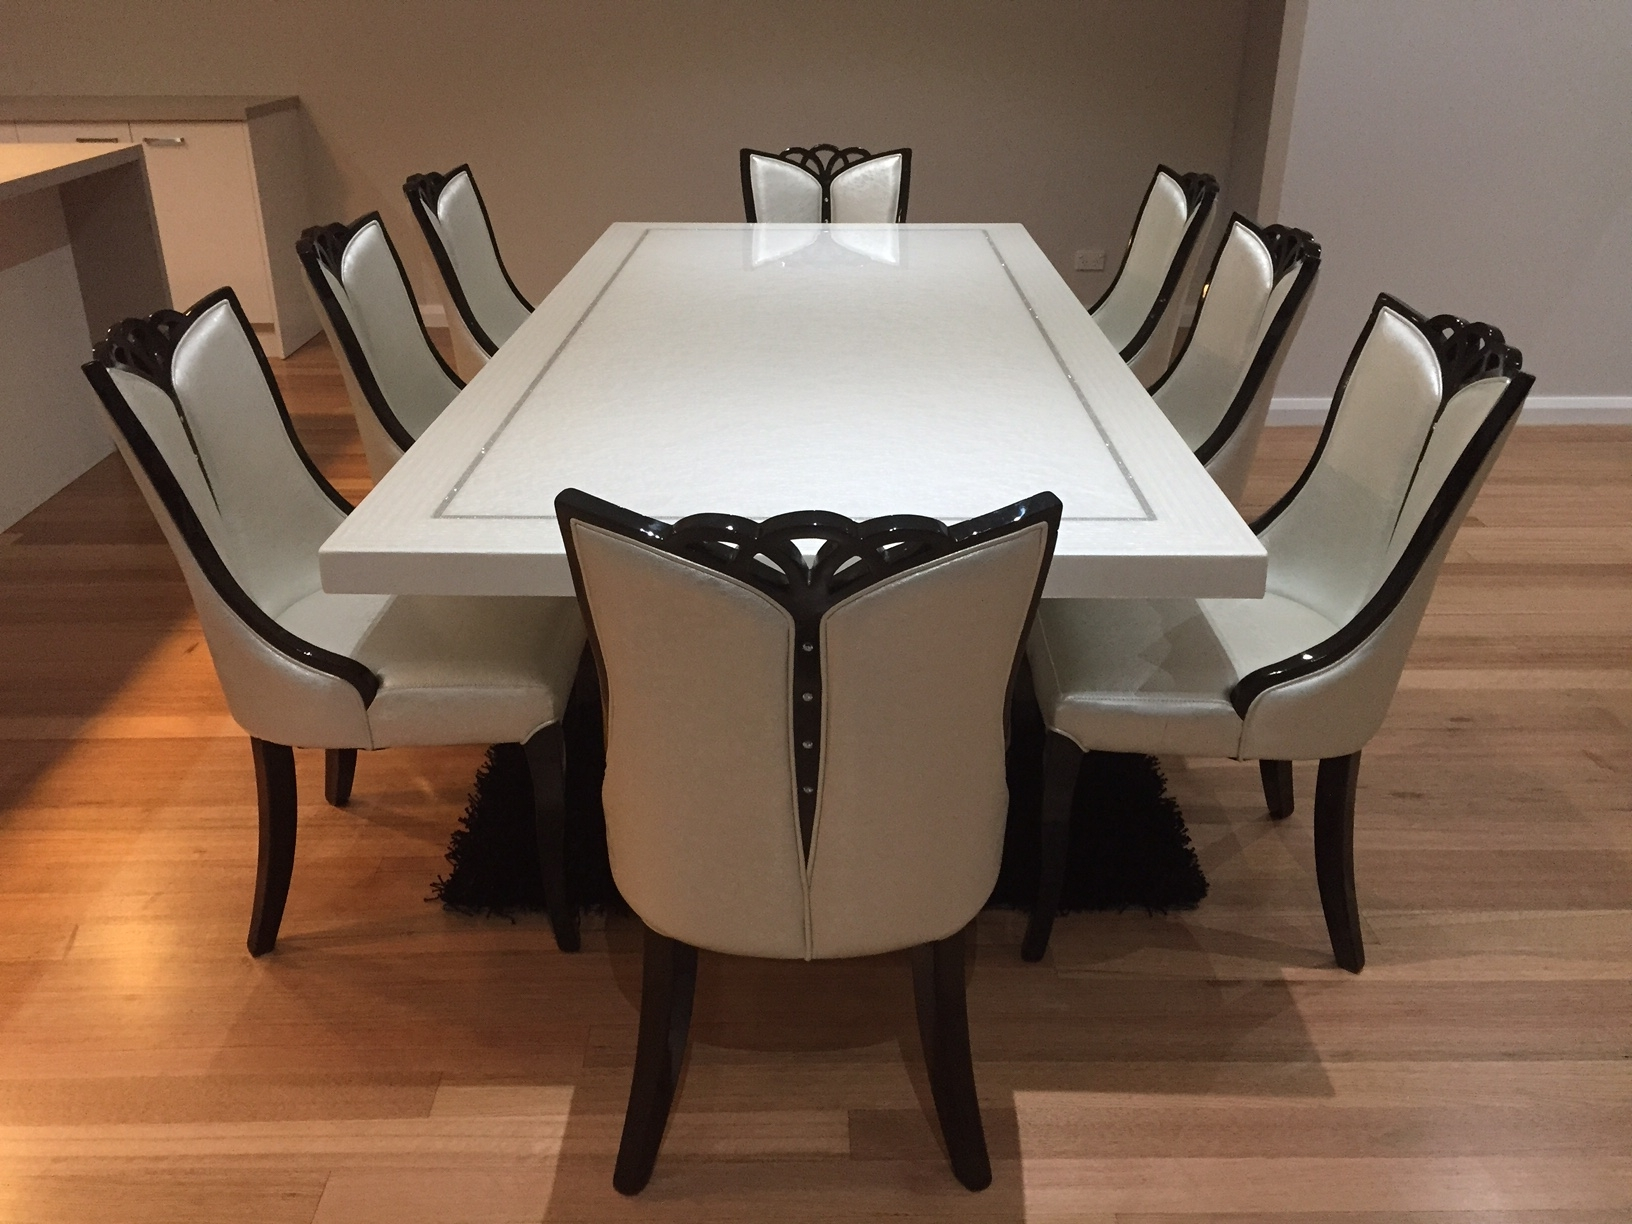 2018 Dining Tables For 8 for Bianca Marble Dining Table With 8 Chairs